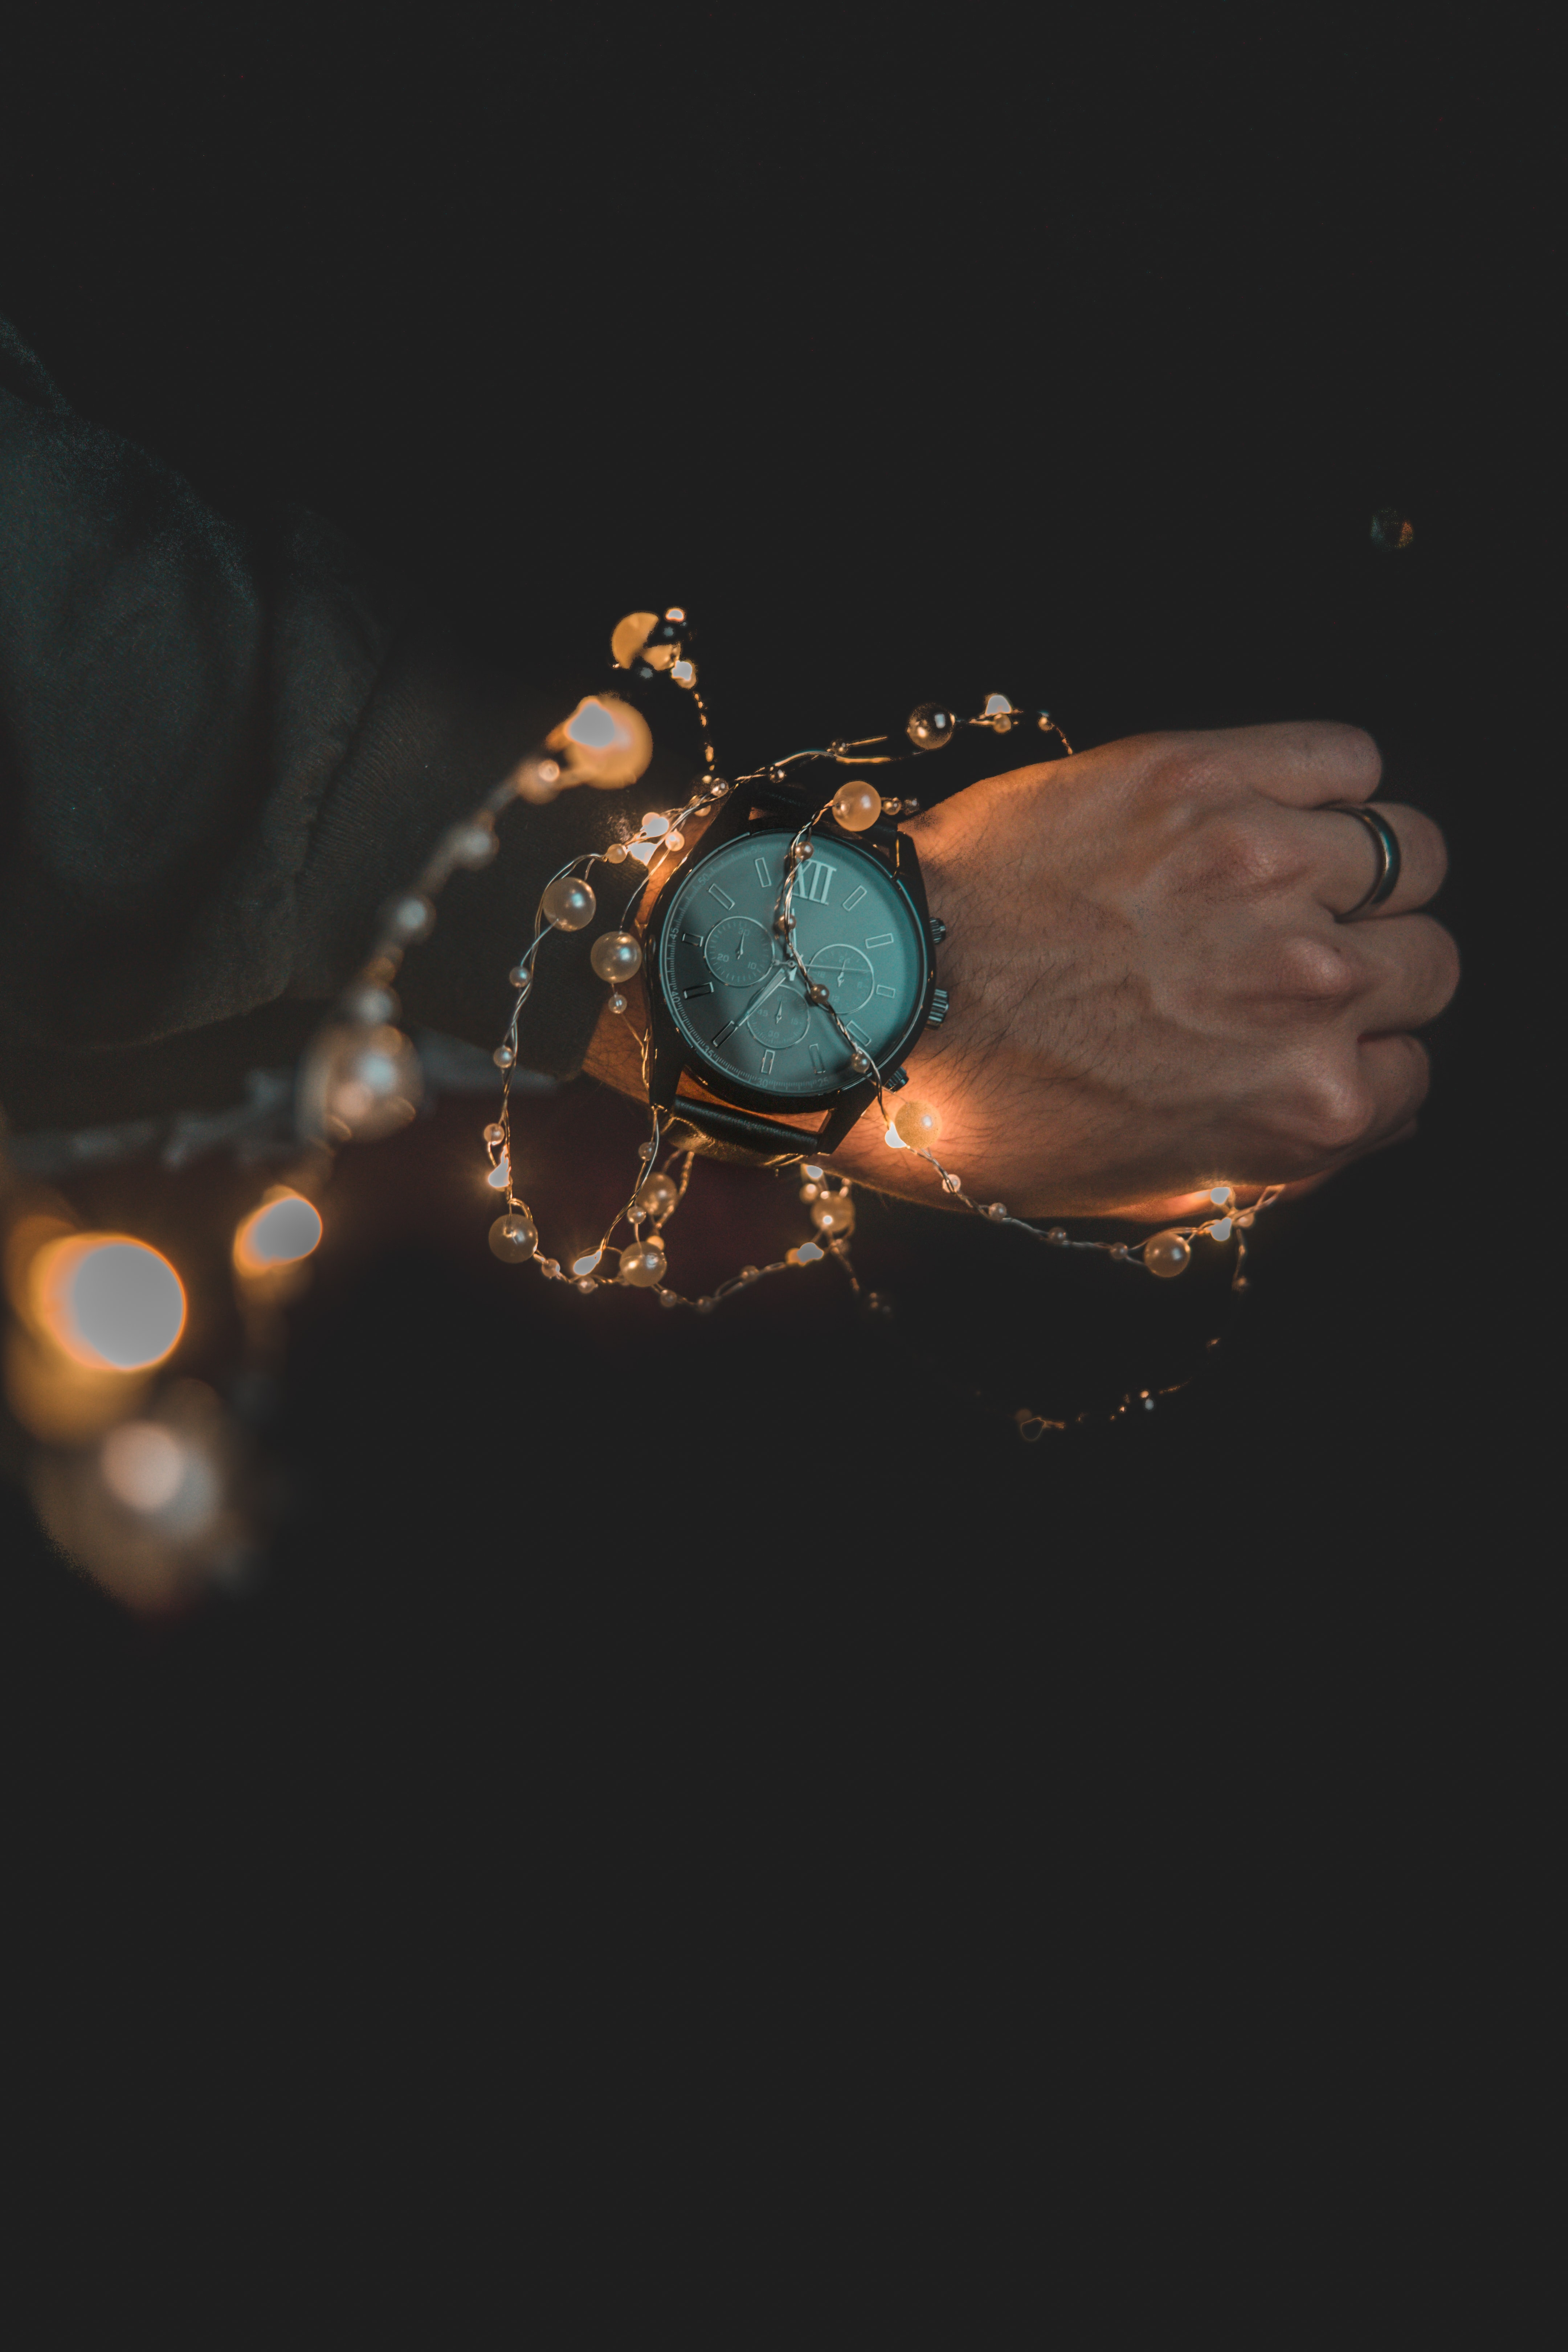 person wearing teal and black analog watch